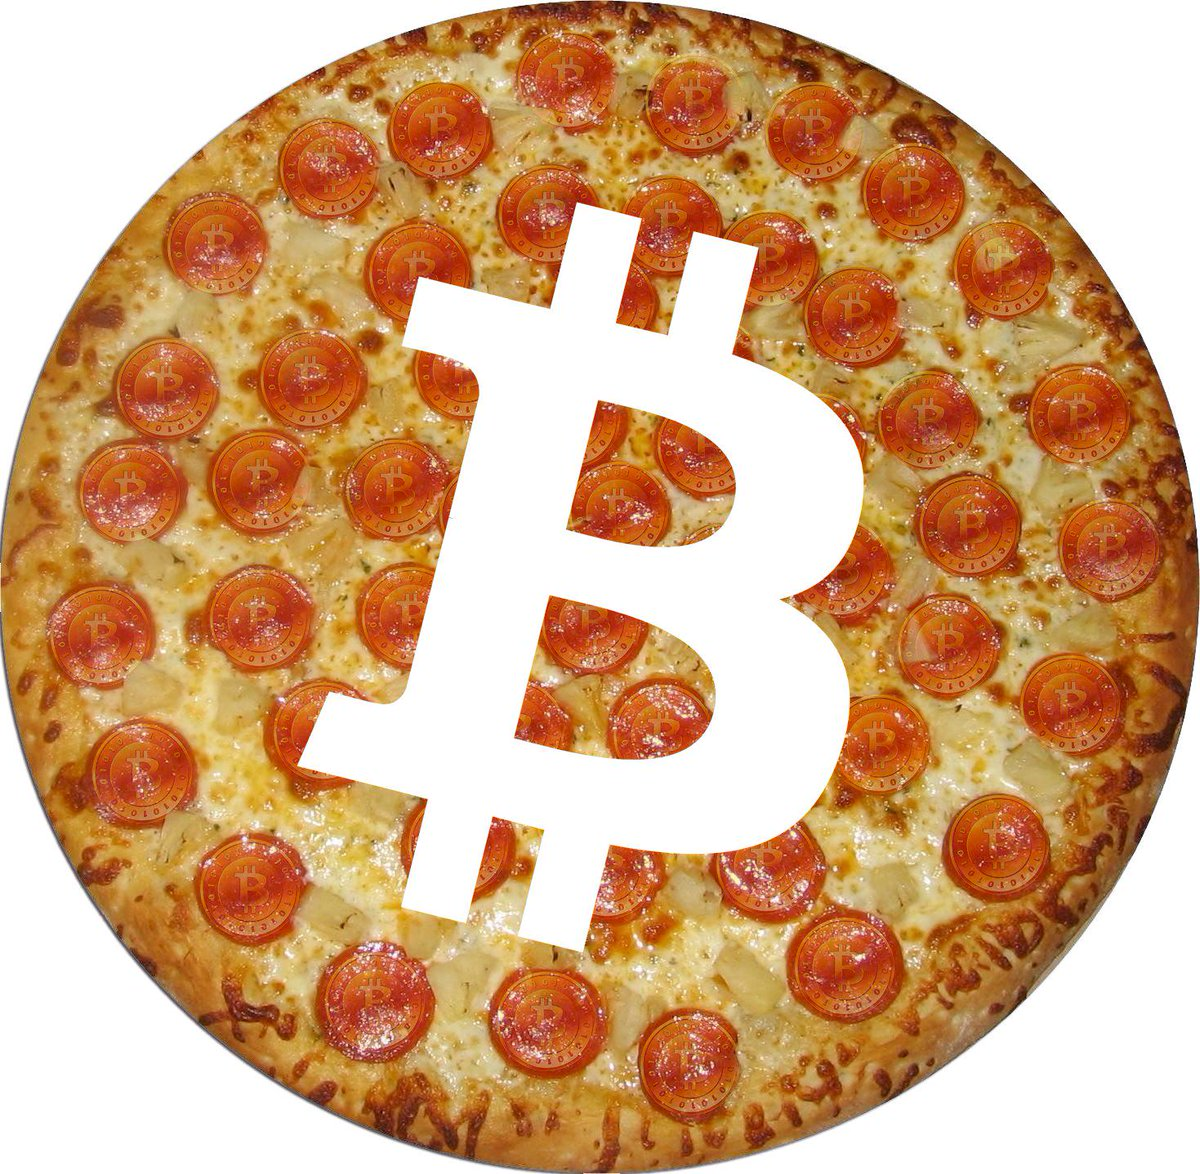 5 years ago, a programmer named Laszlo Hanyecz paid 10,000 #Bitcoin for two pizzas and made history #BitcoinPizzaDay http://t.co/d4gUxBHAzZ